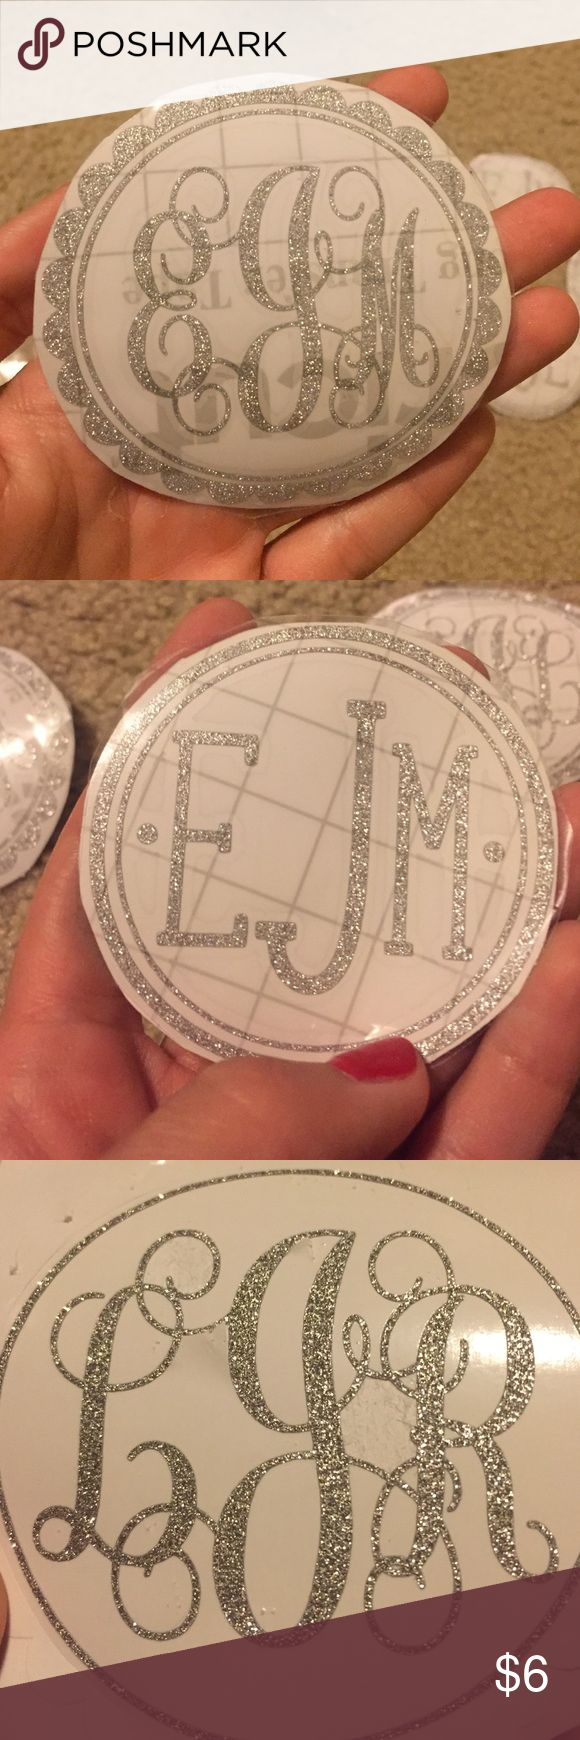 """3"""" Silver Glitter Monogram Sticker This is a permanent silver glitter vinyl, ready to be applied to a car, laptop, Lilly cup, Yeti cup, tumbler, or anything you can imagine! This listing is for silver glitter but these designs can be done on other vinyl colors as well. Please comment below for other inquiries. You aren't limited to these designs but these are the most popular! You can also do a bigger size, this is for a 3"""" monogram sticker in silver glitter. VINYL Accessories"""